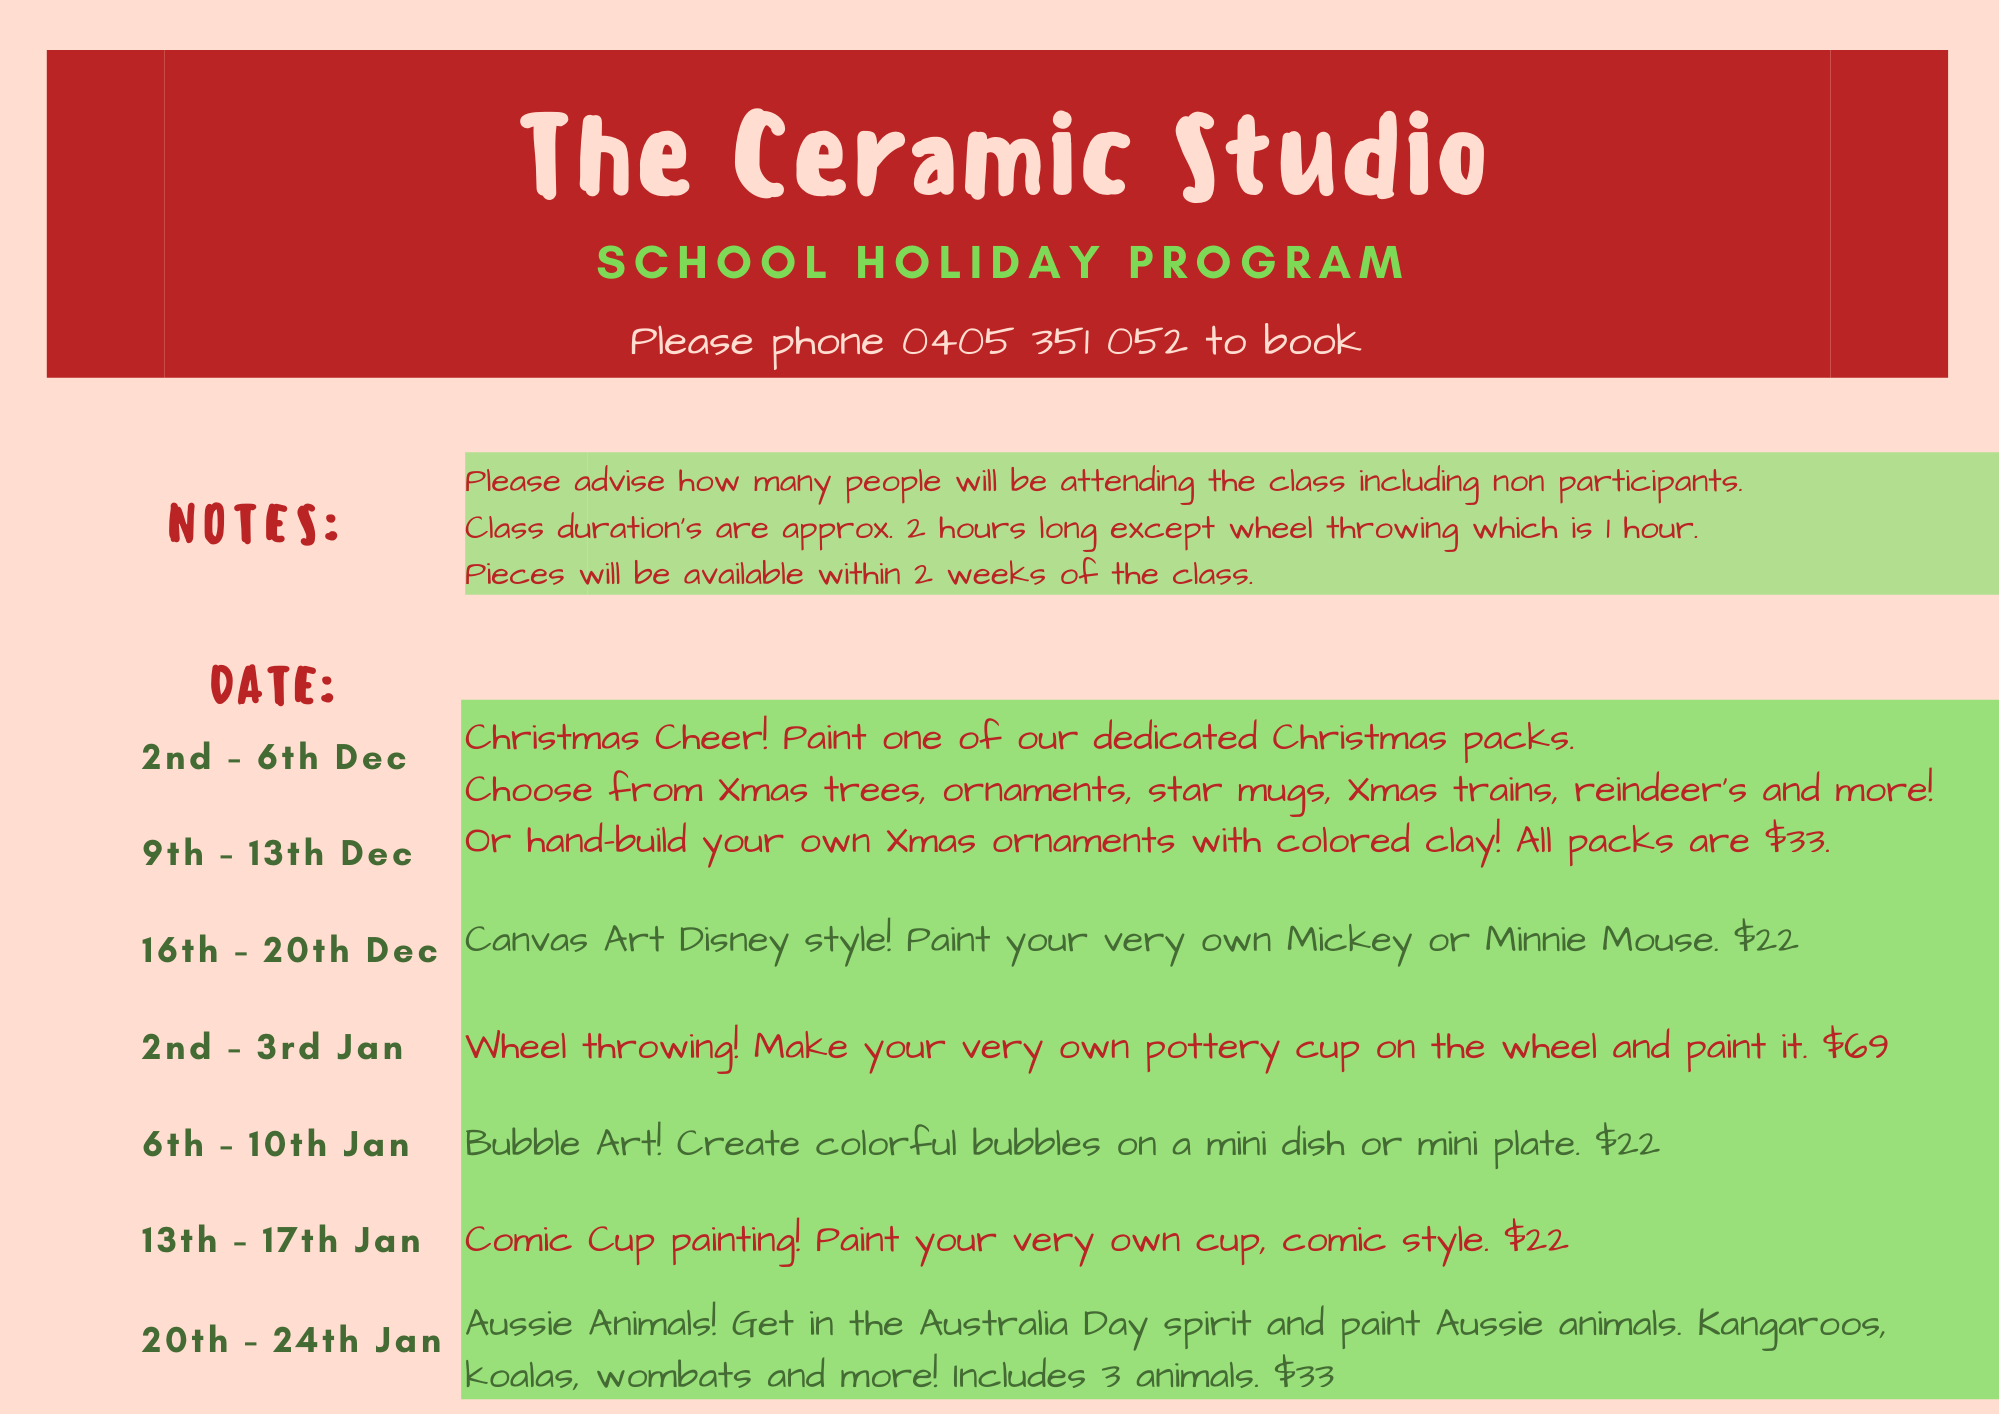 Holiday program 2019 | The Ceramic Studio